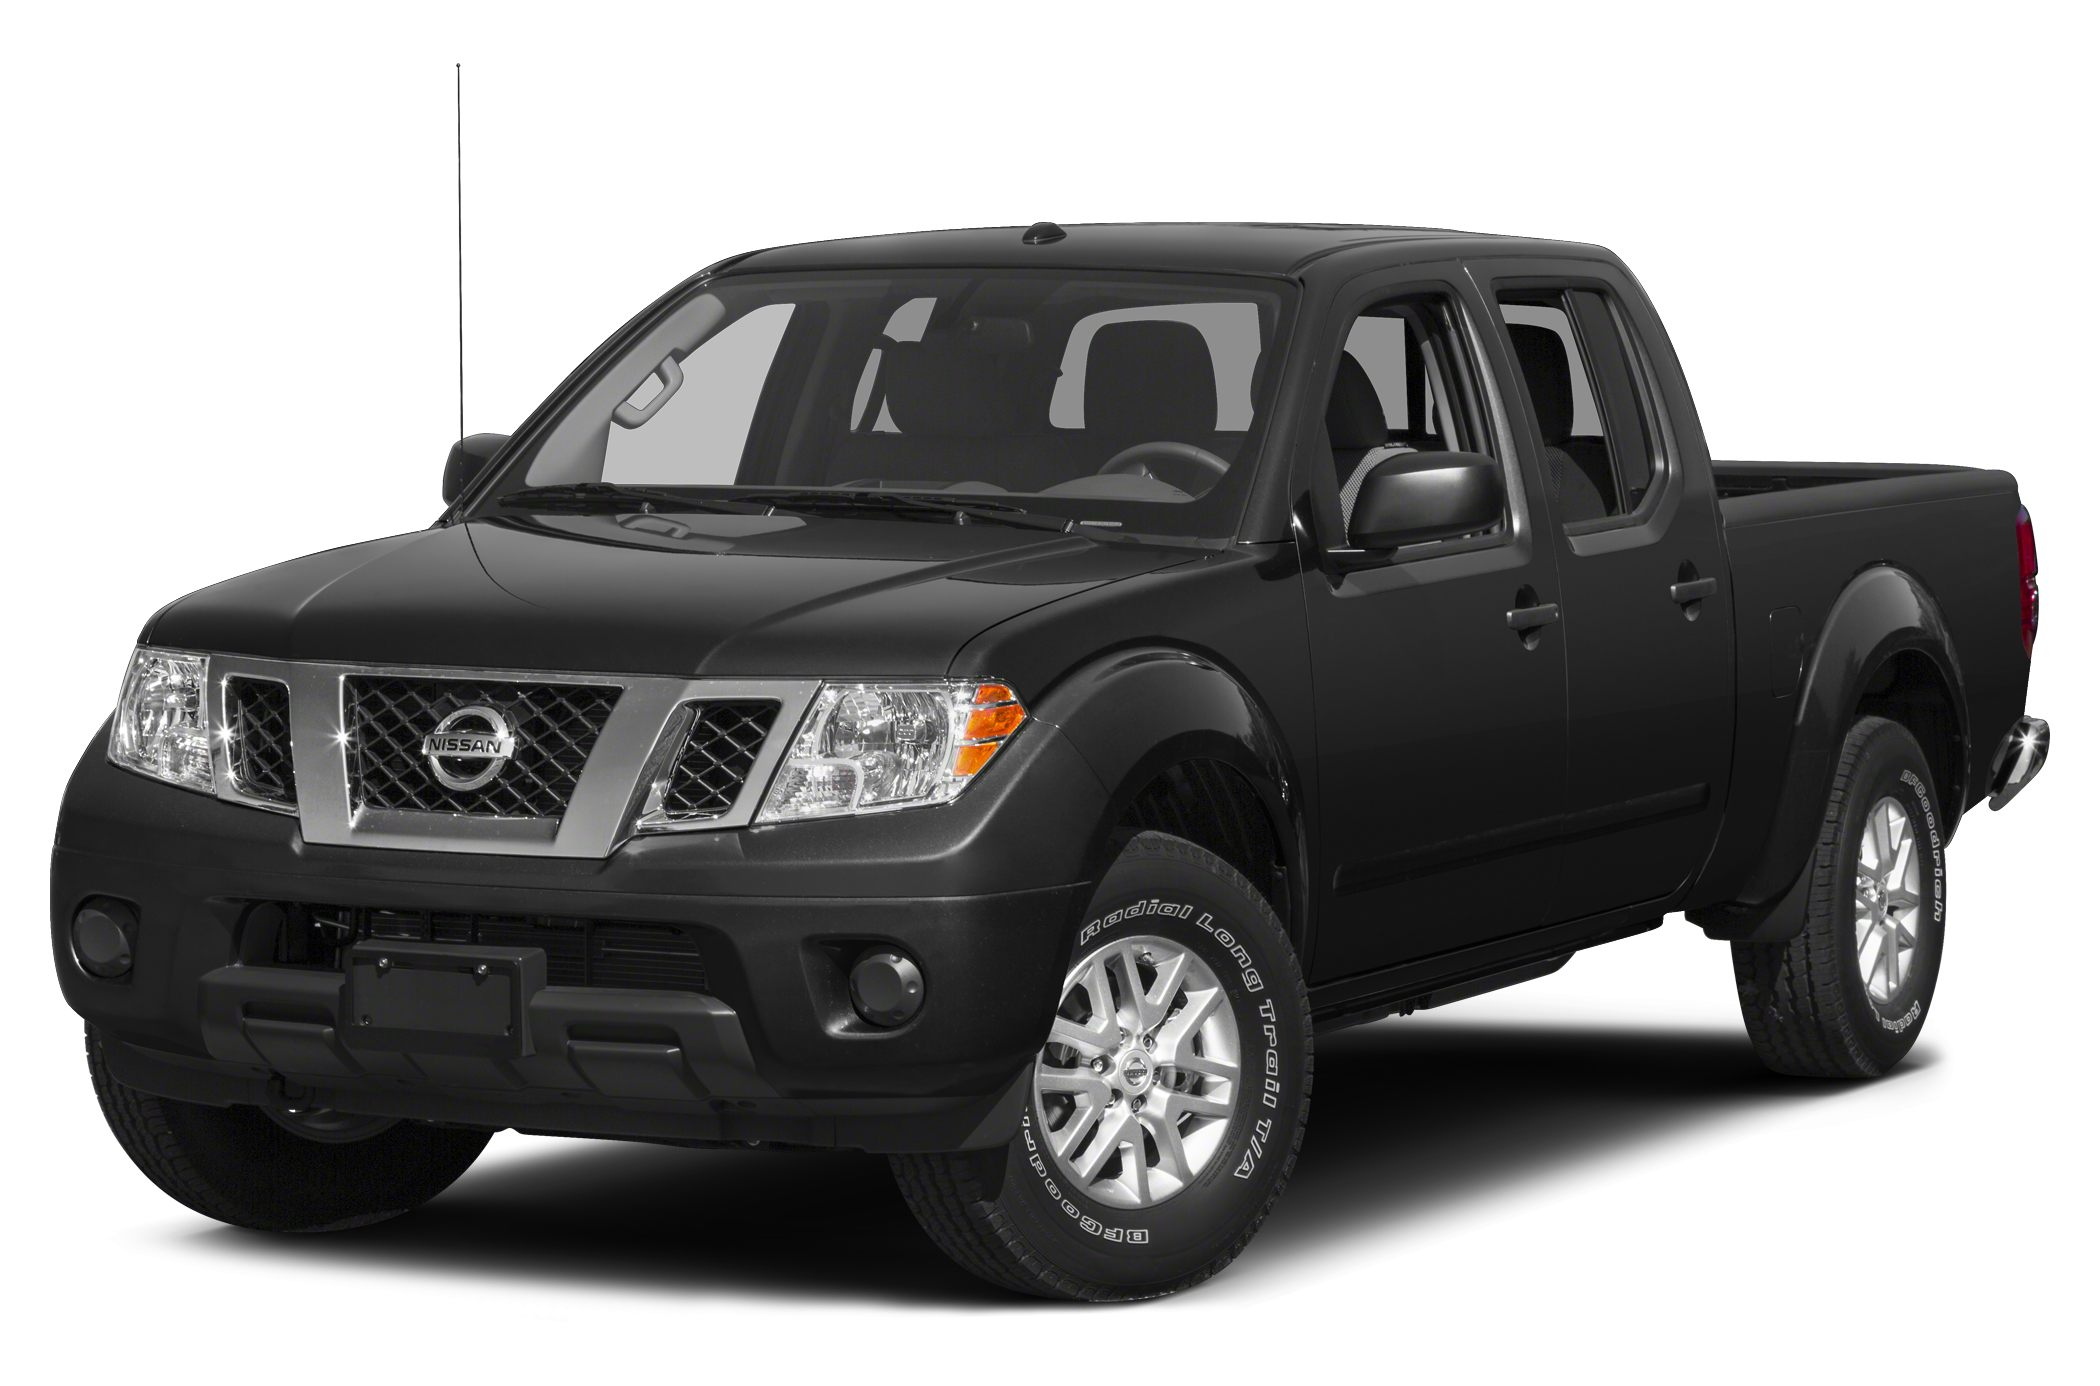 2015 Nissan Frontier SV Crew Cab Pickup for sale in Beech Island for $23,777 with 10 miles.